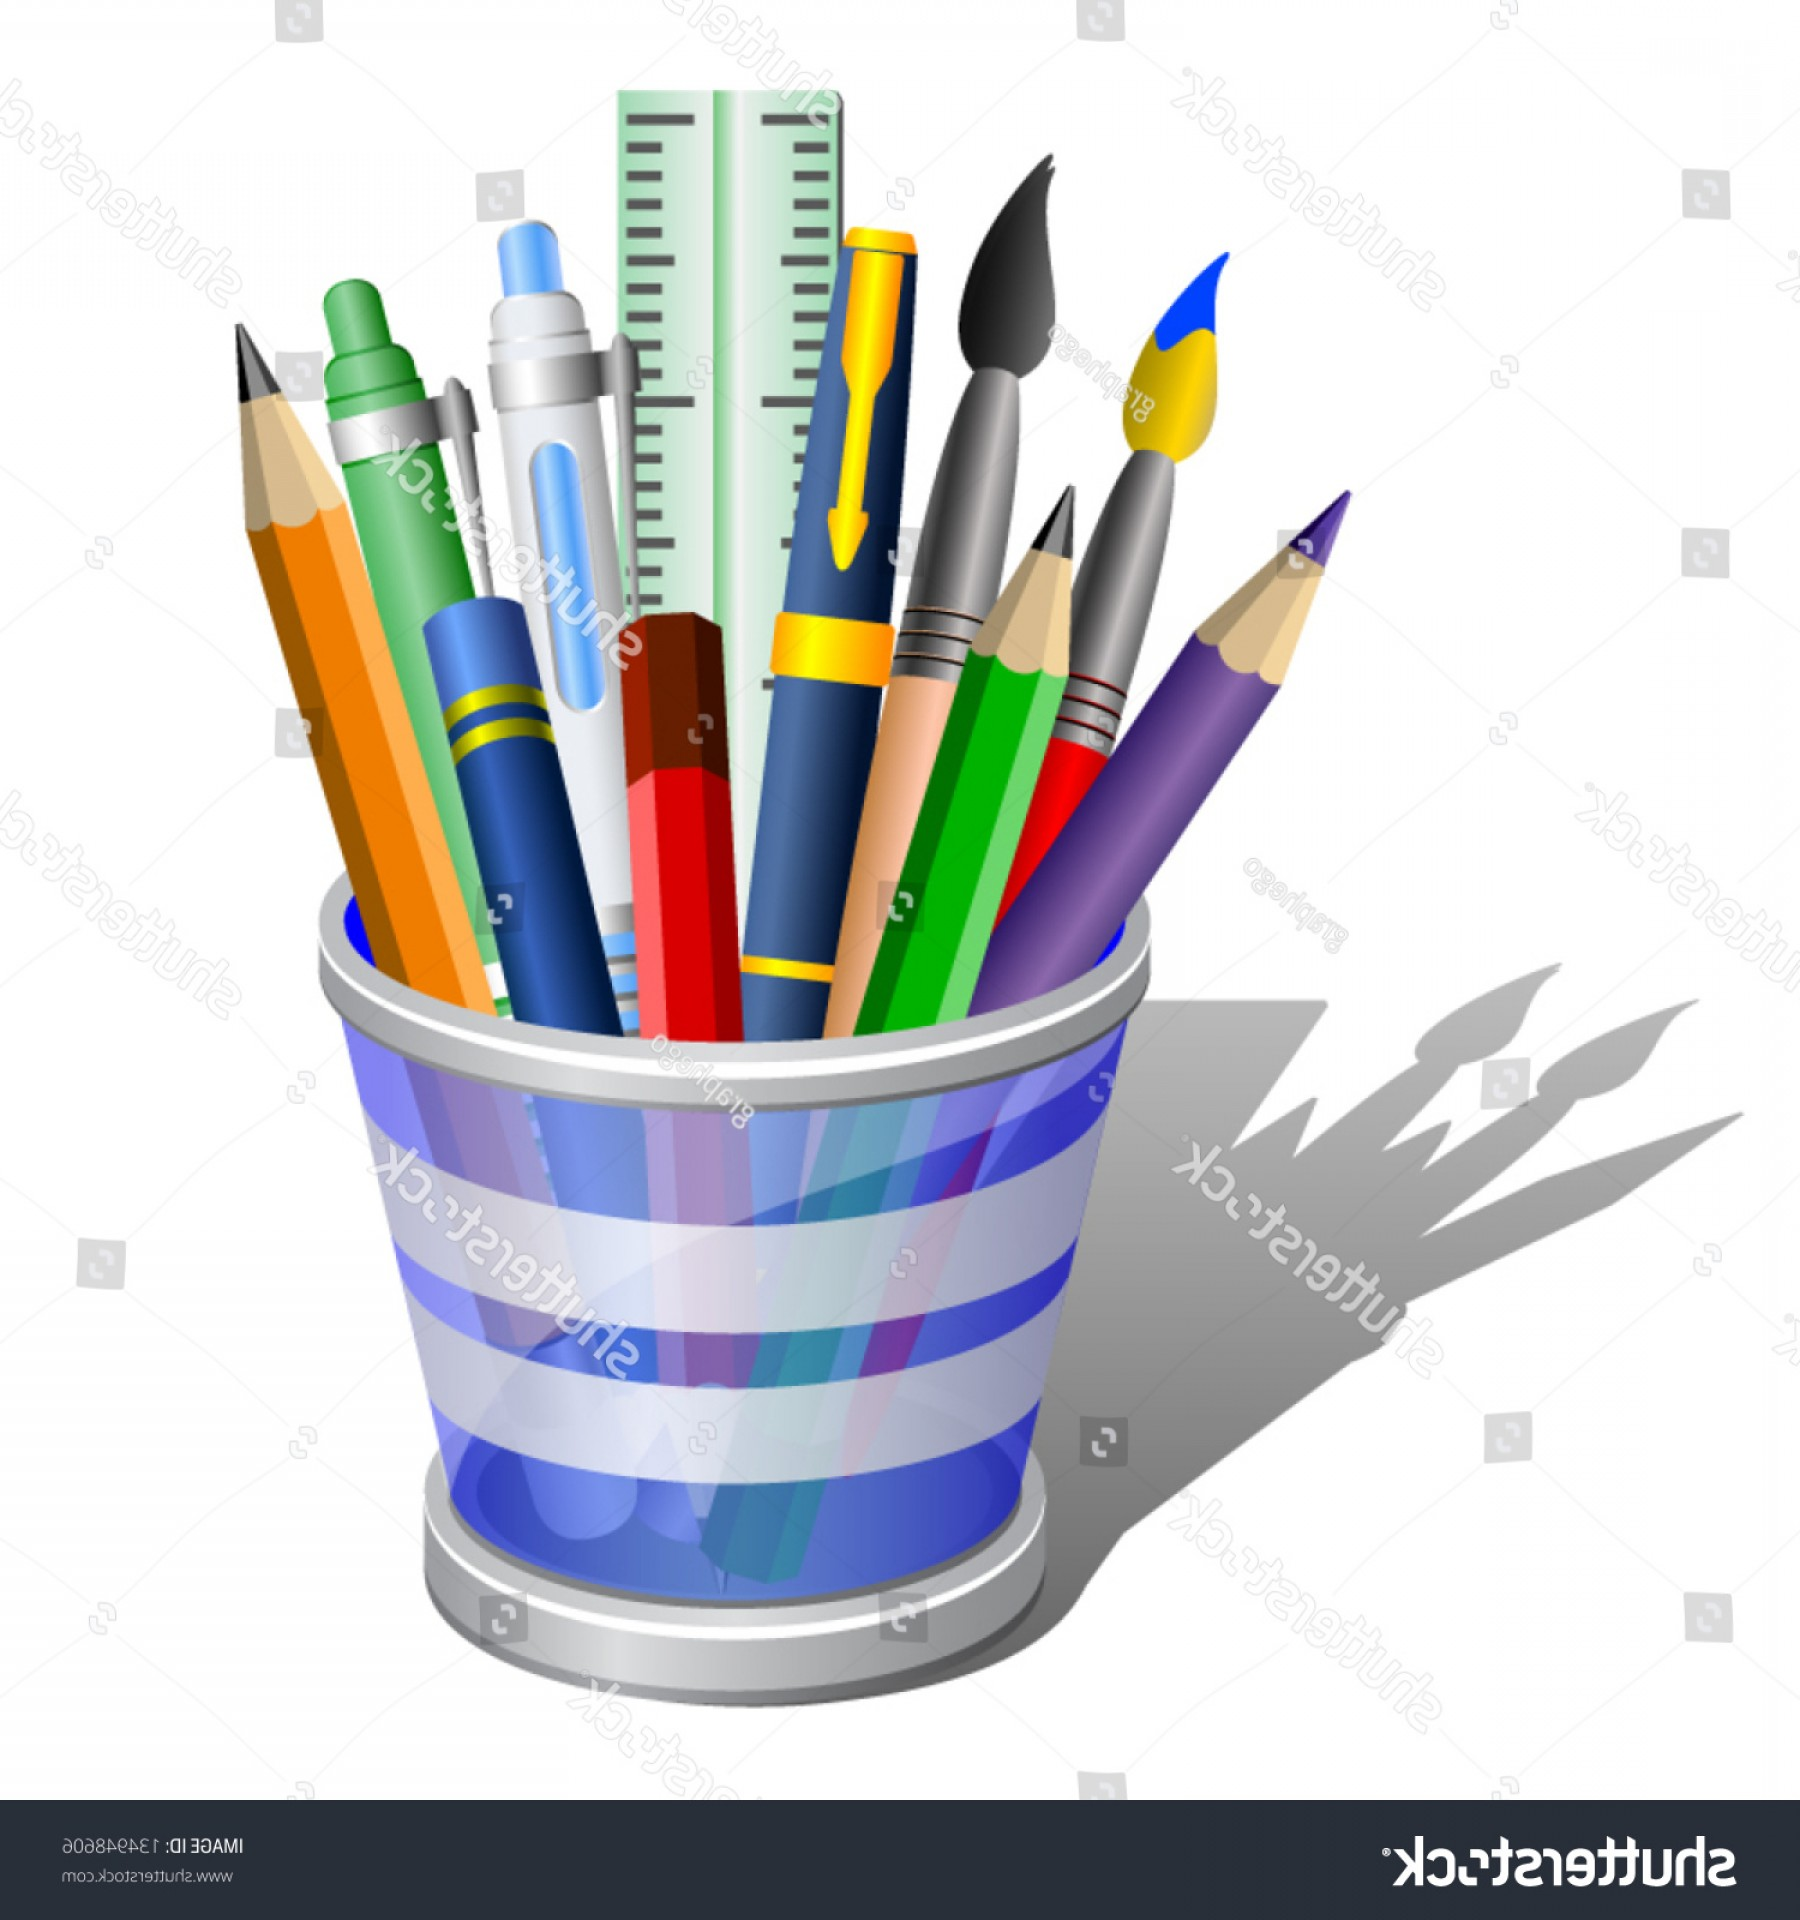 Vector Pencil Holder: Pencil Holder Accessories School Supplies Icon